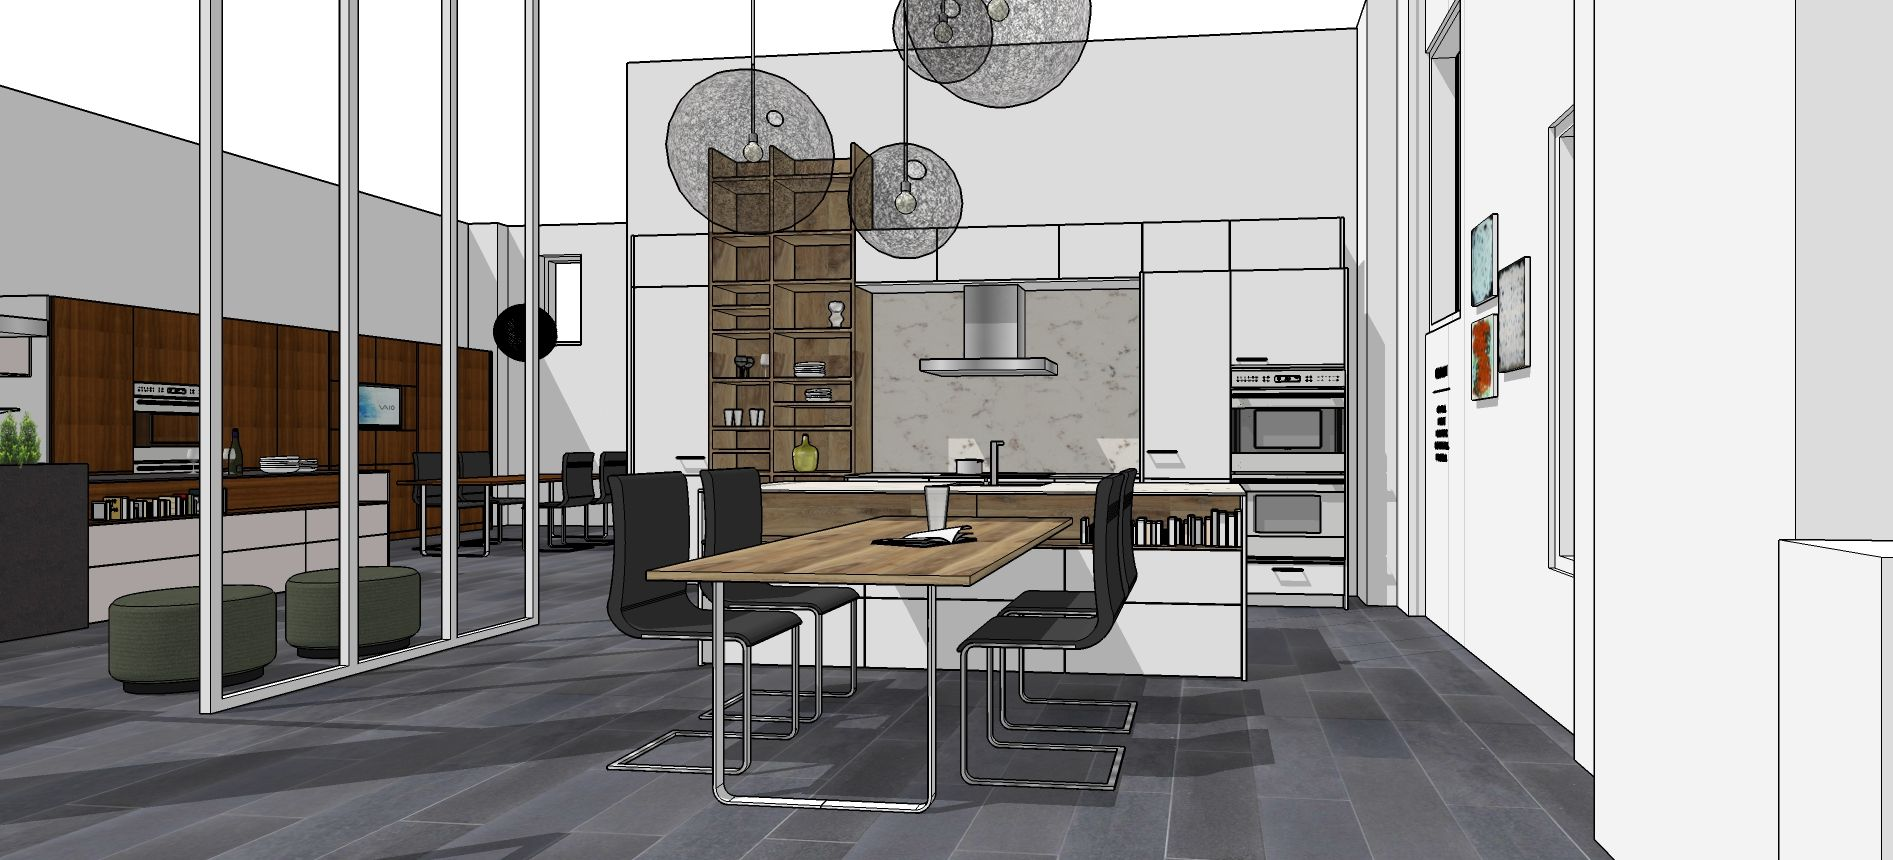 Working in Sketchup